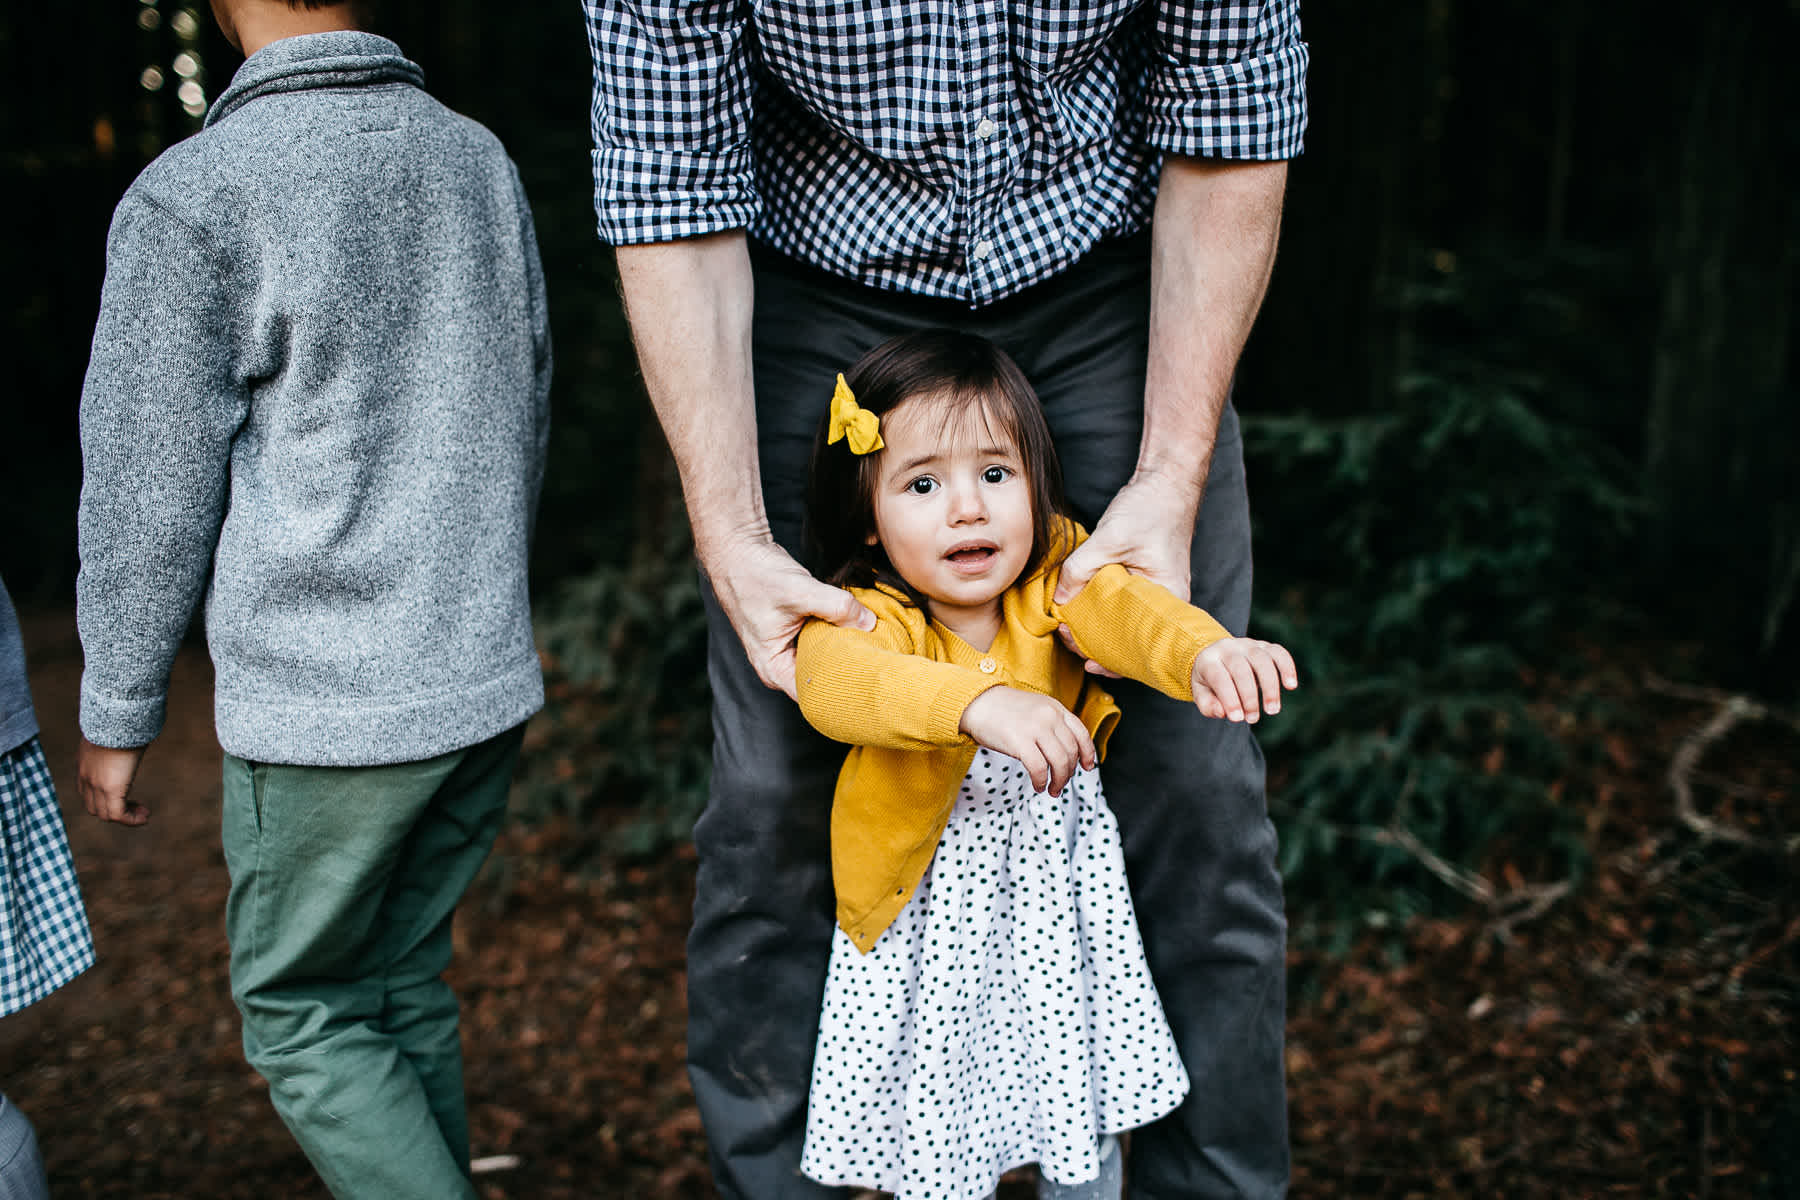 oakland-redwoods-dreamy-big-family-lifestyle-session-3